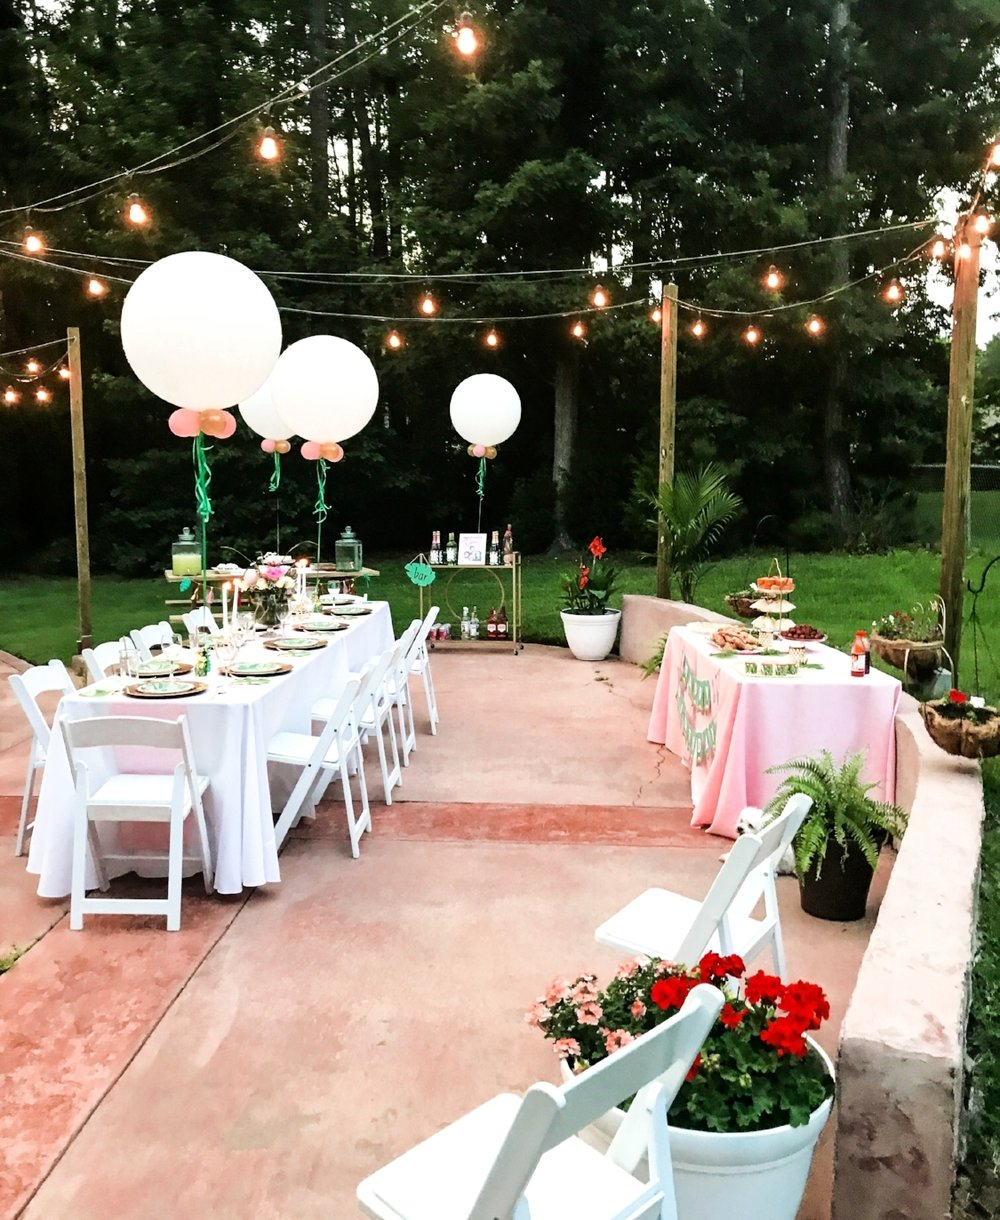 The string lights from Proxy Lighting created a beautiful glow and ambiance!